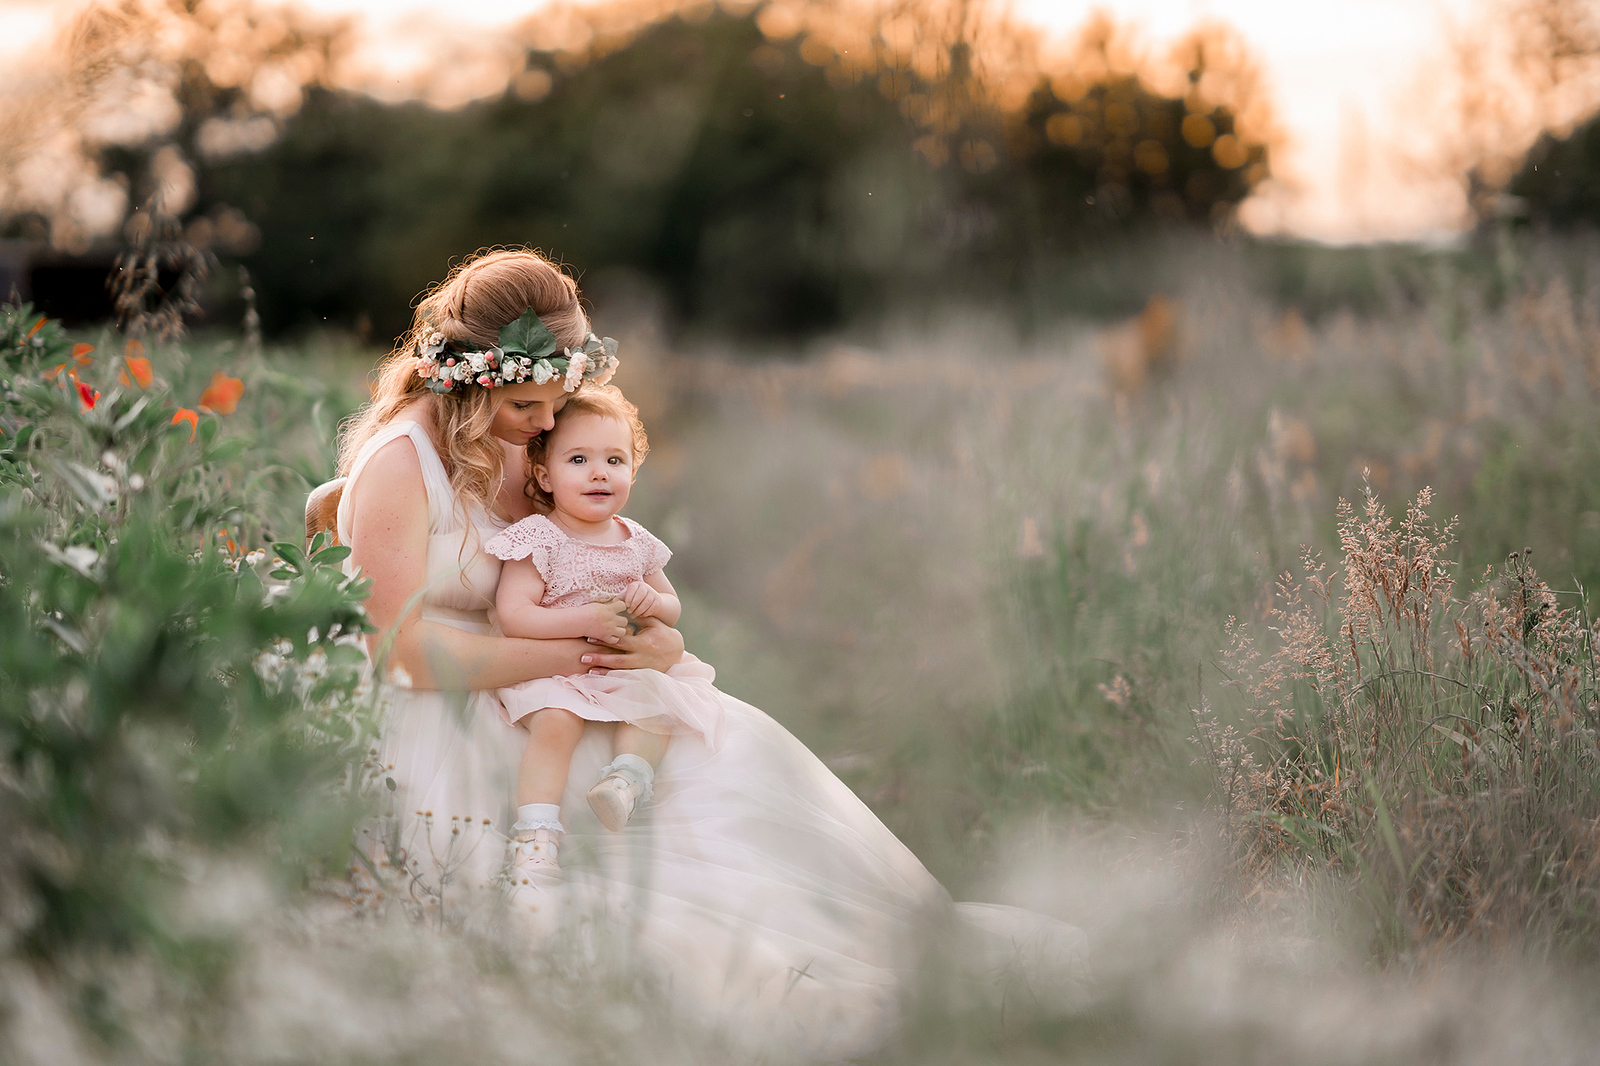 Bride and daughter wedding photo